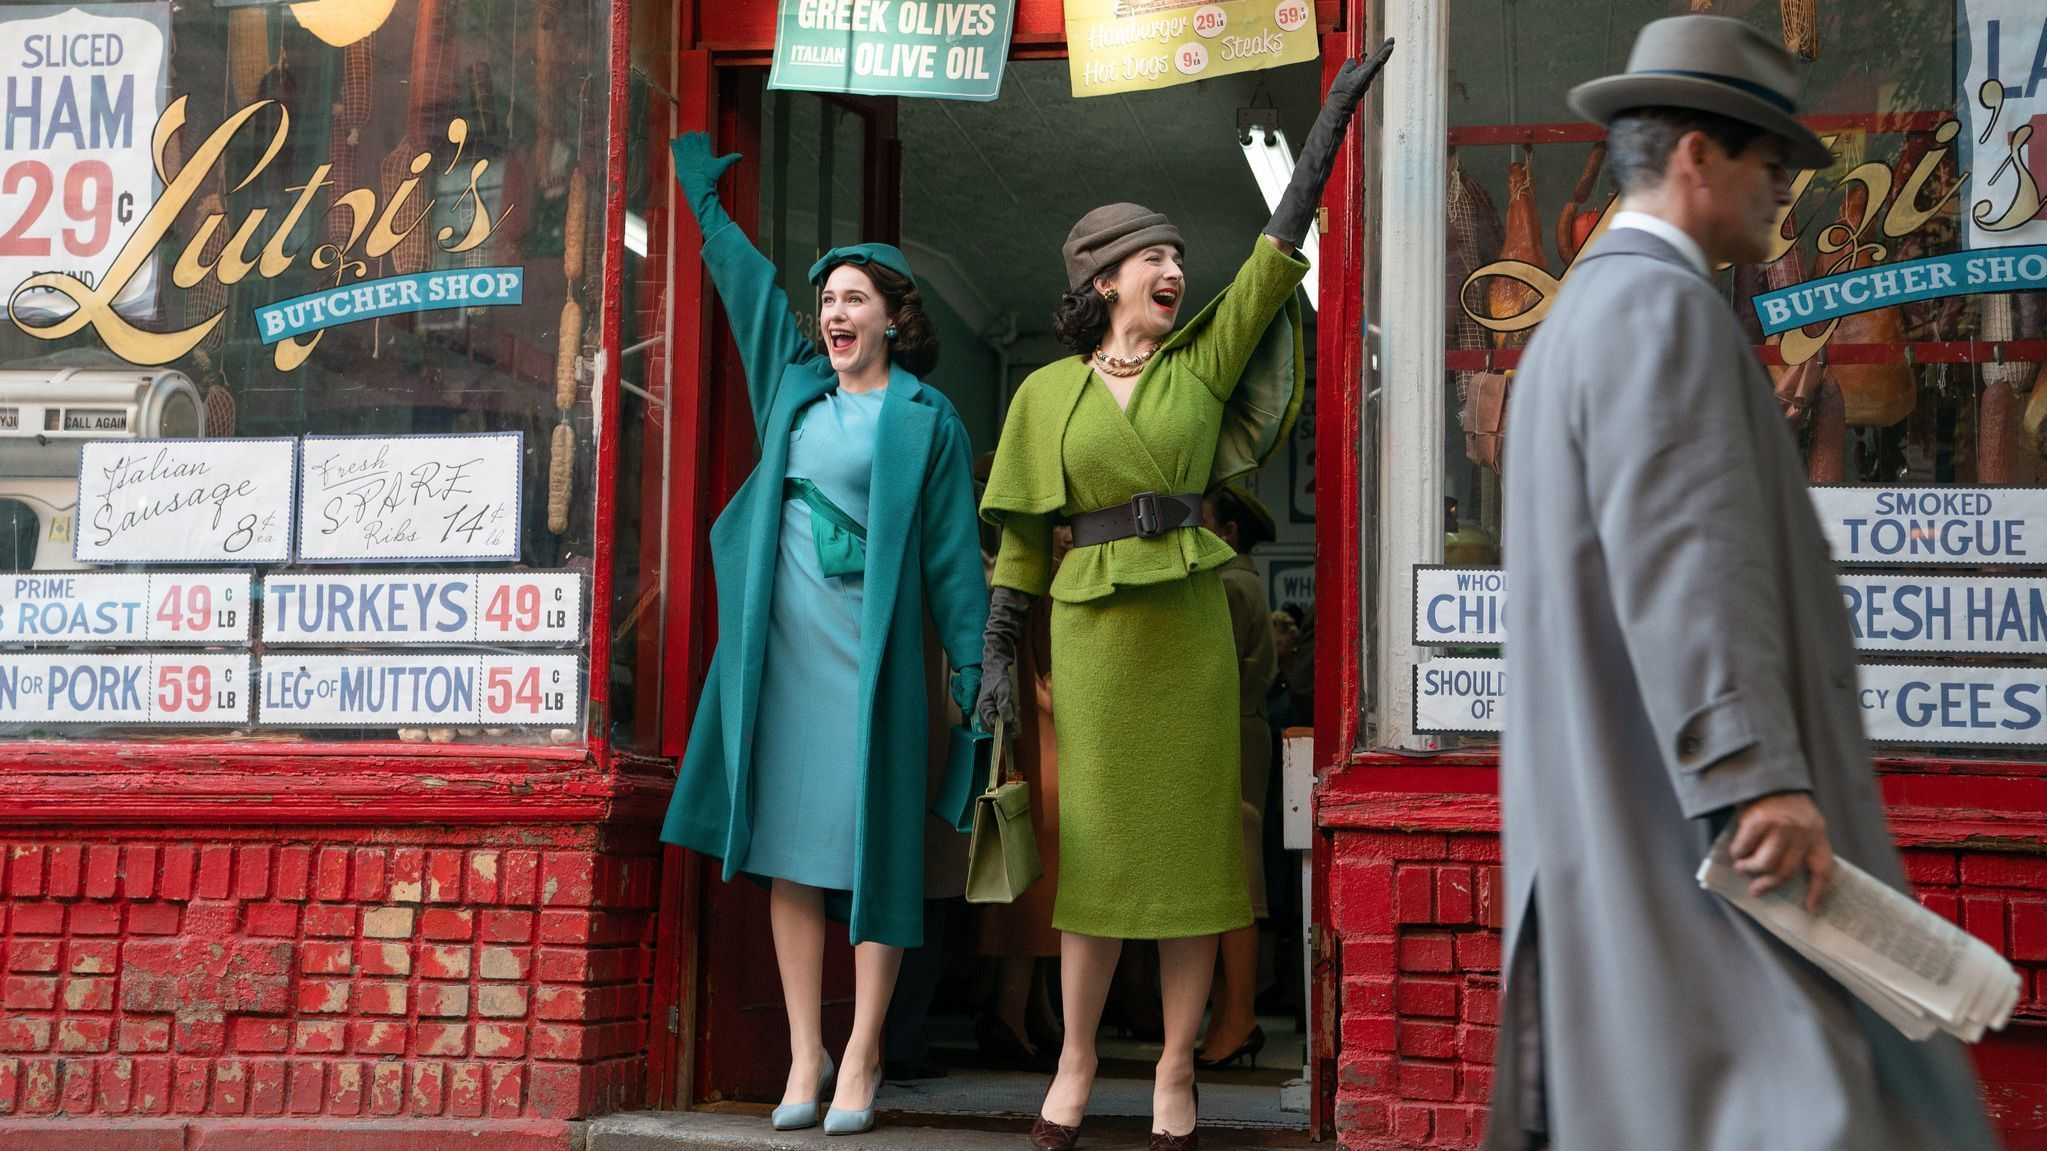 As The Marvelous Mrs. Maisel returns for Season 2, we go behind the scenes of those amazing sets